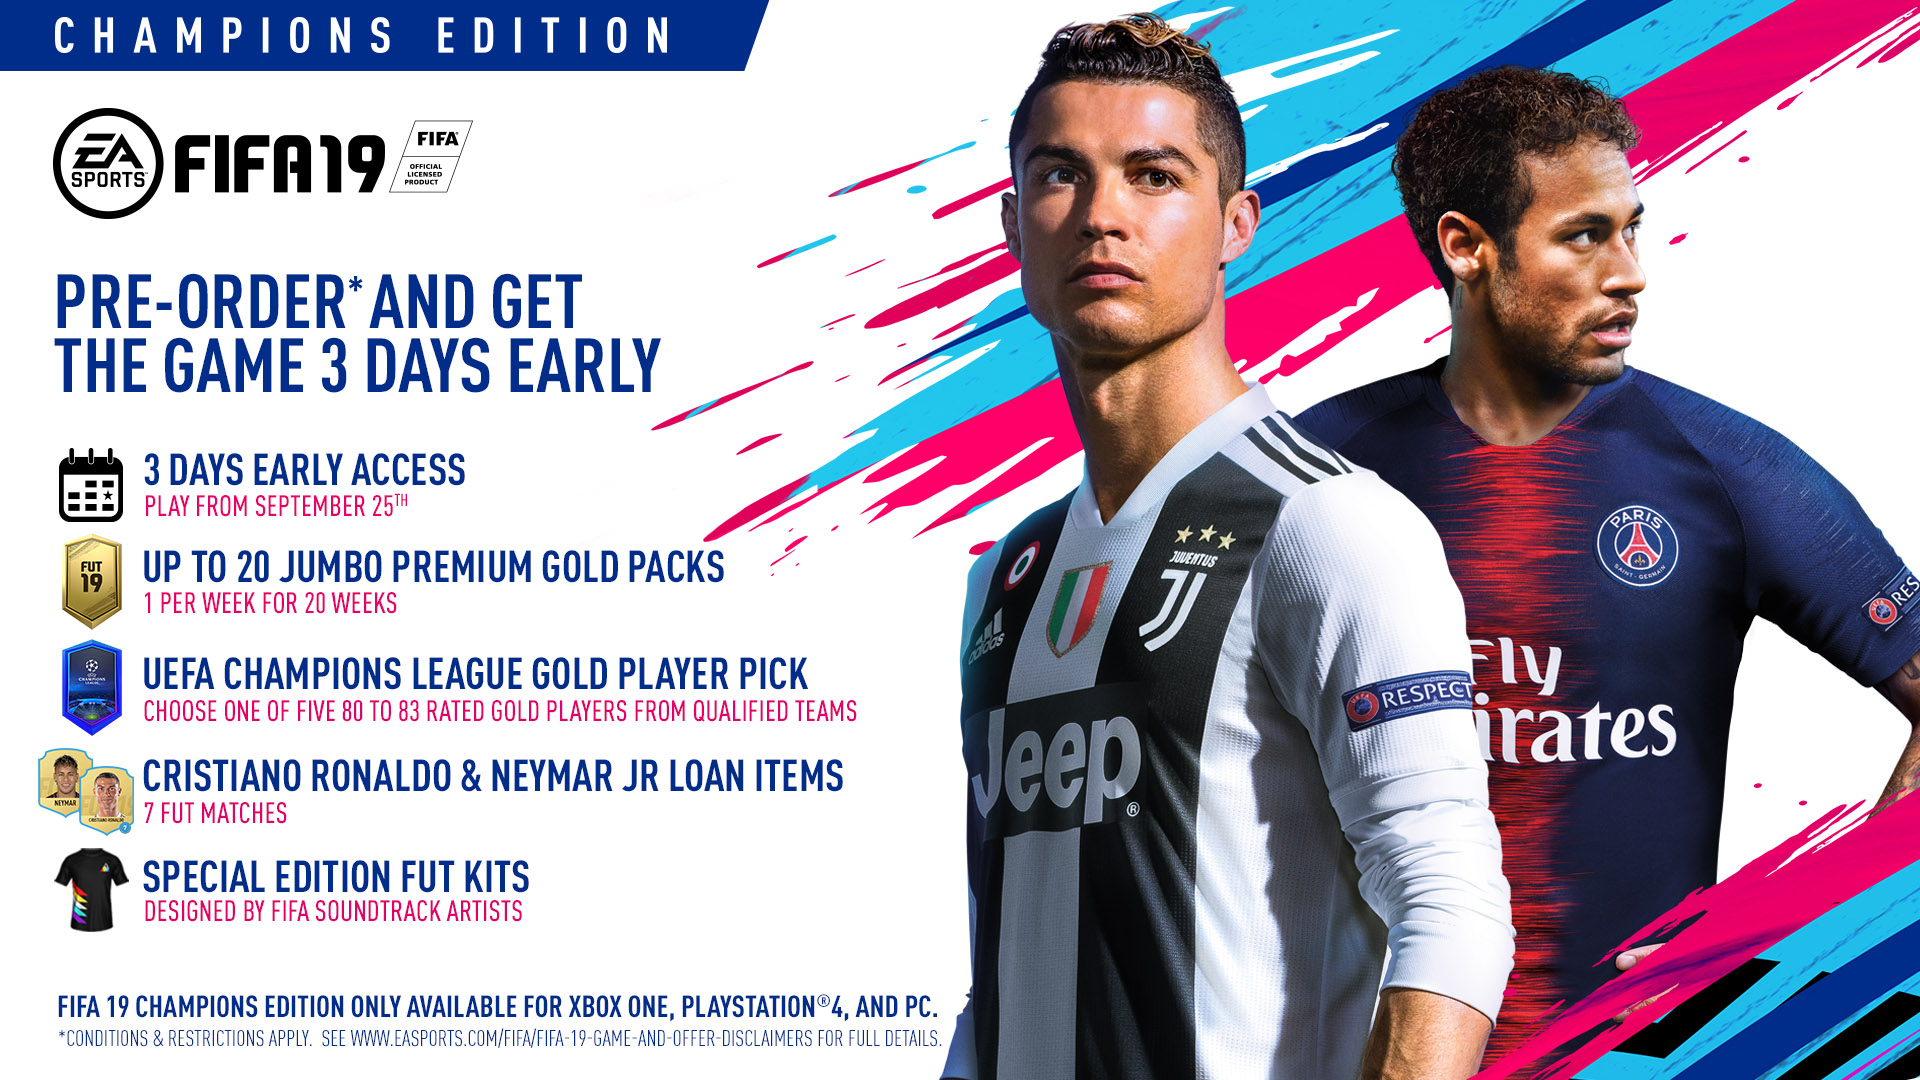 super popular 5bc32 c01c2 FIFA 19 Champions Edition, Electronic Arts, PlayStation 4, 014633373998